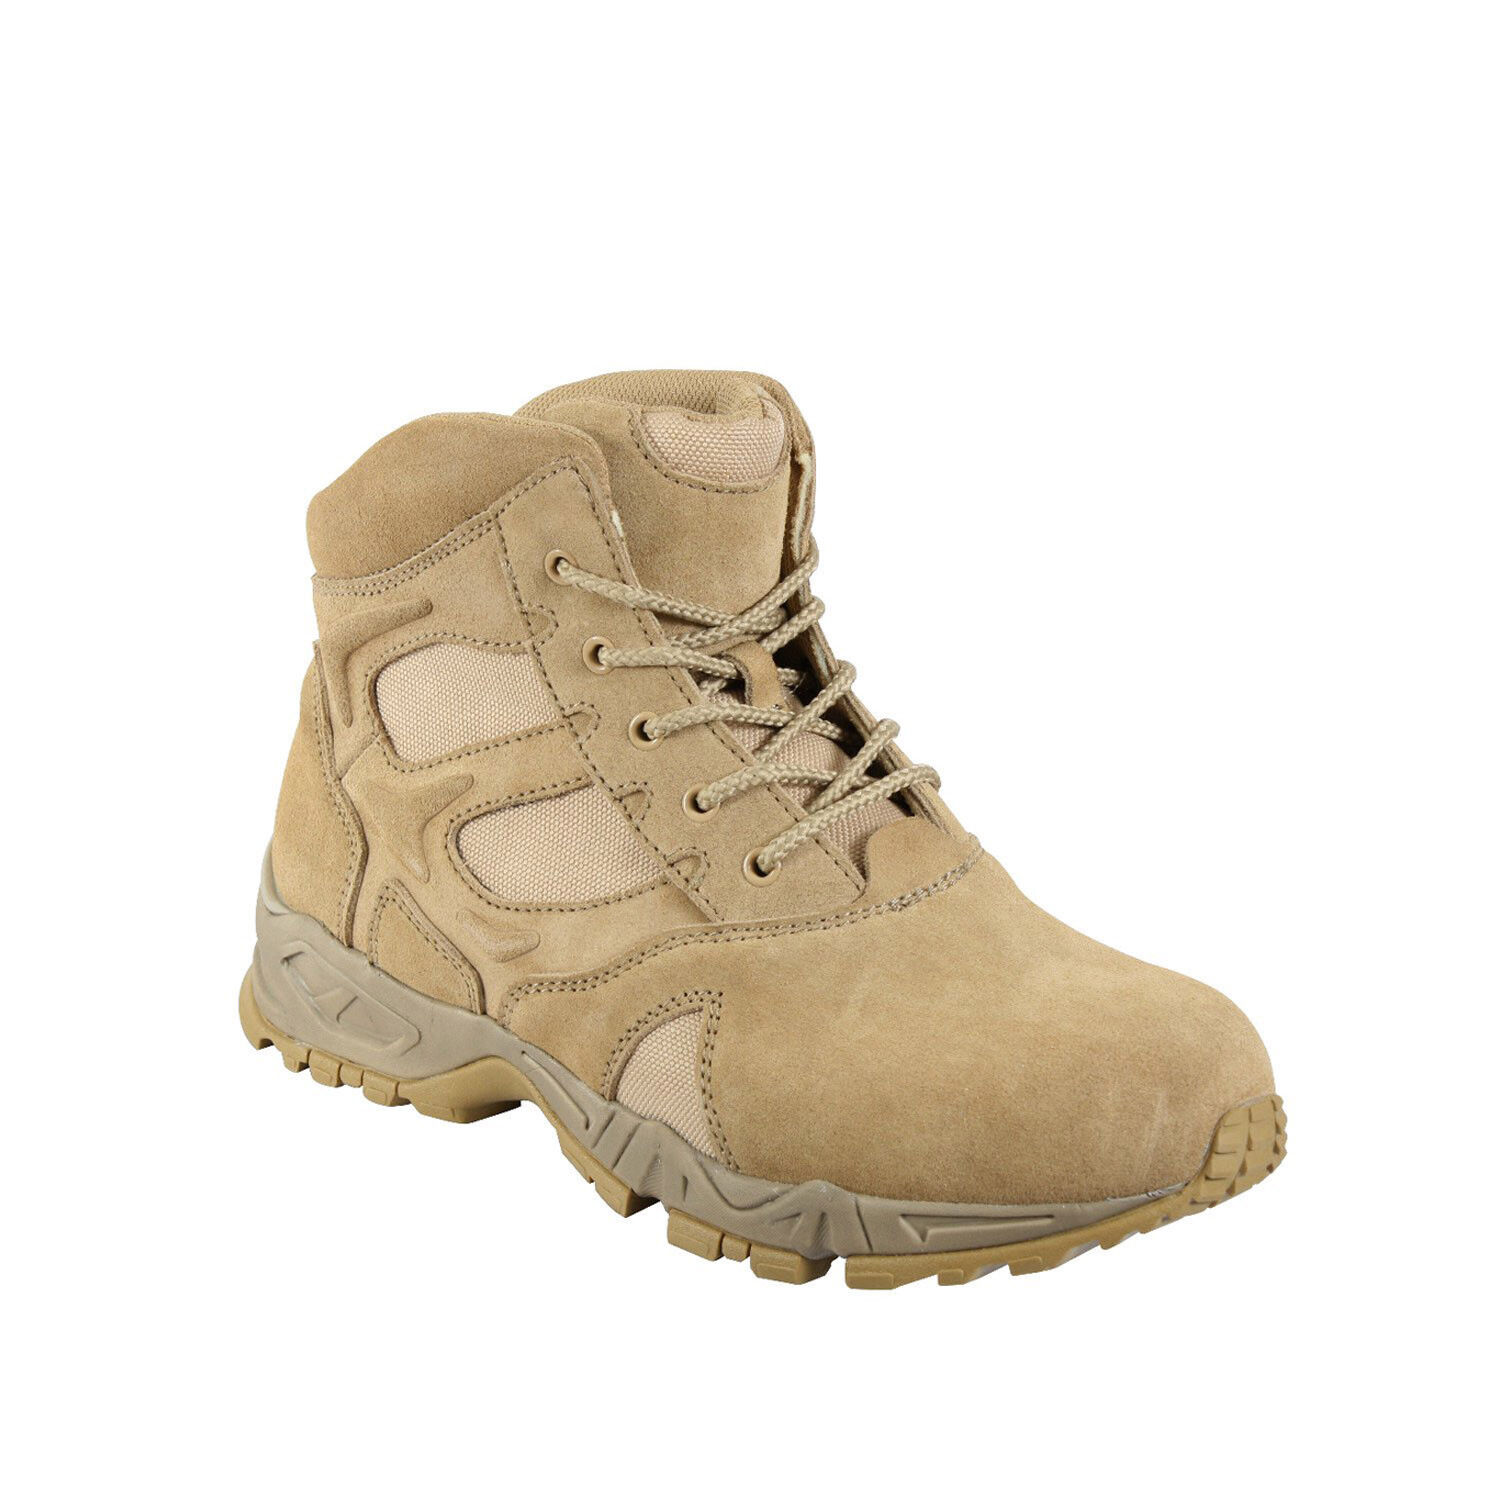 Rothco 6 Inch Deployment Forced Entry Desert Tan Deployment Inch Boot cb905e